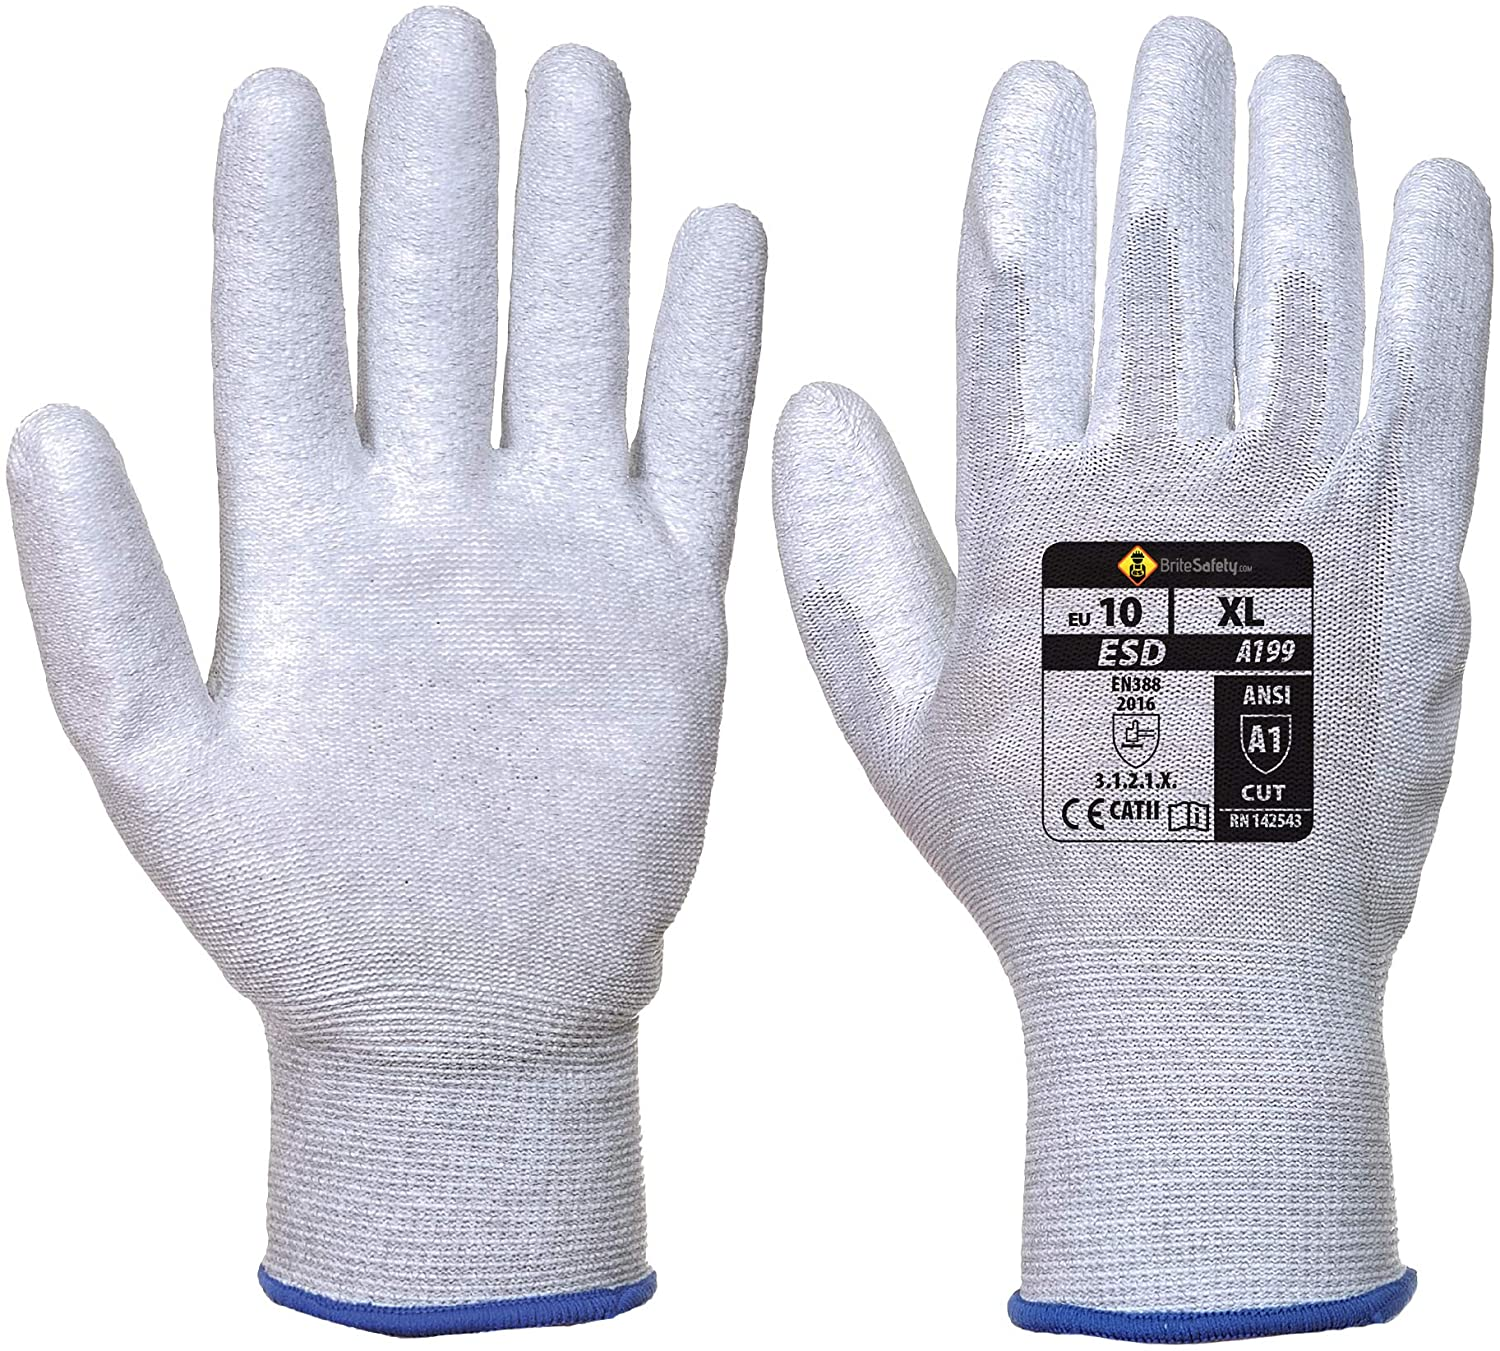 Antistatic PU Palm Gloves - Work Glove for Men and Women (Medium, Gray, 12 Pairs)